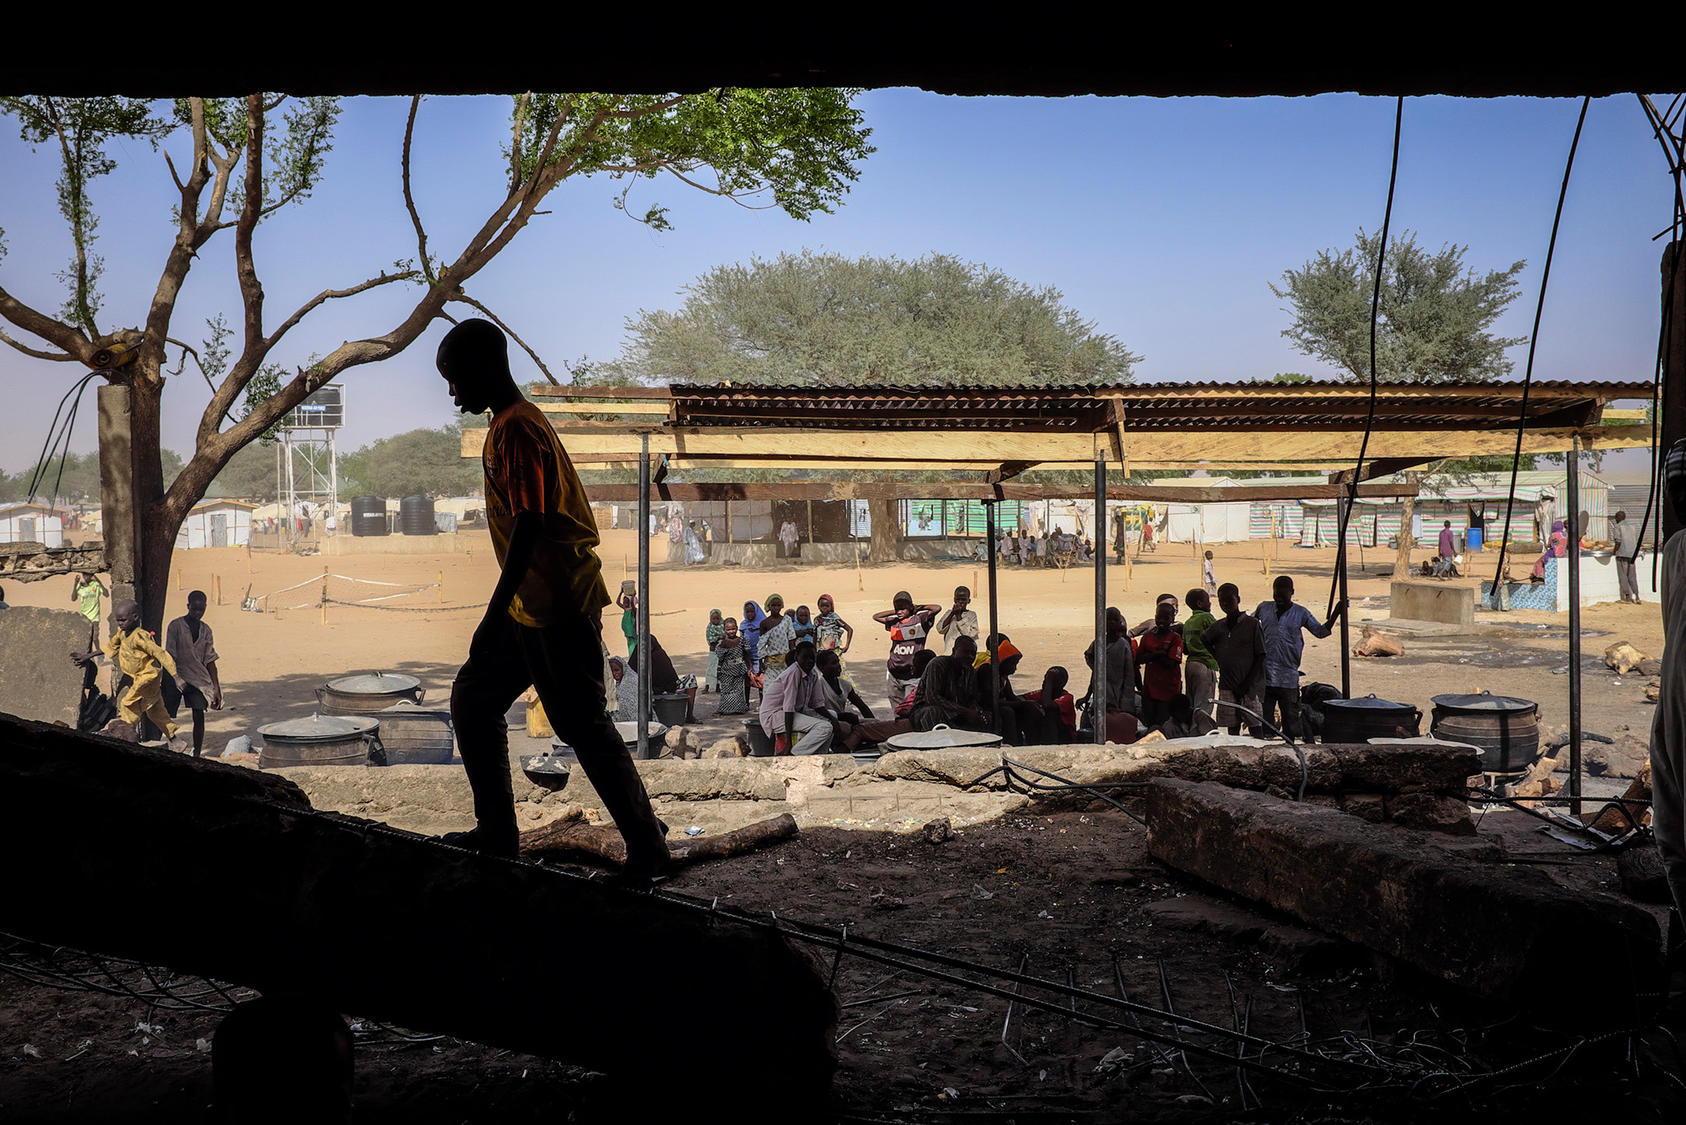 Children at the Dalori government camp set up for civilians who have fled the Boko Haram militant group, on the outskirts of Maiduguri, Nigeria, April 20, 2016. Many Nigerians who have returned from captivity after being kidnapped and raped by Boko Haram are met with suspicion that they have joined the militants' ranks. (Ashley Gilbertson/The New York Times)